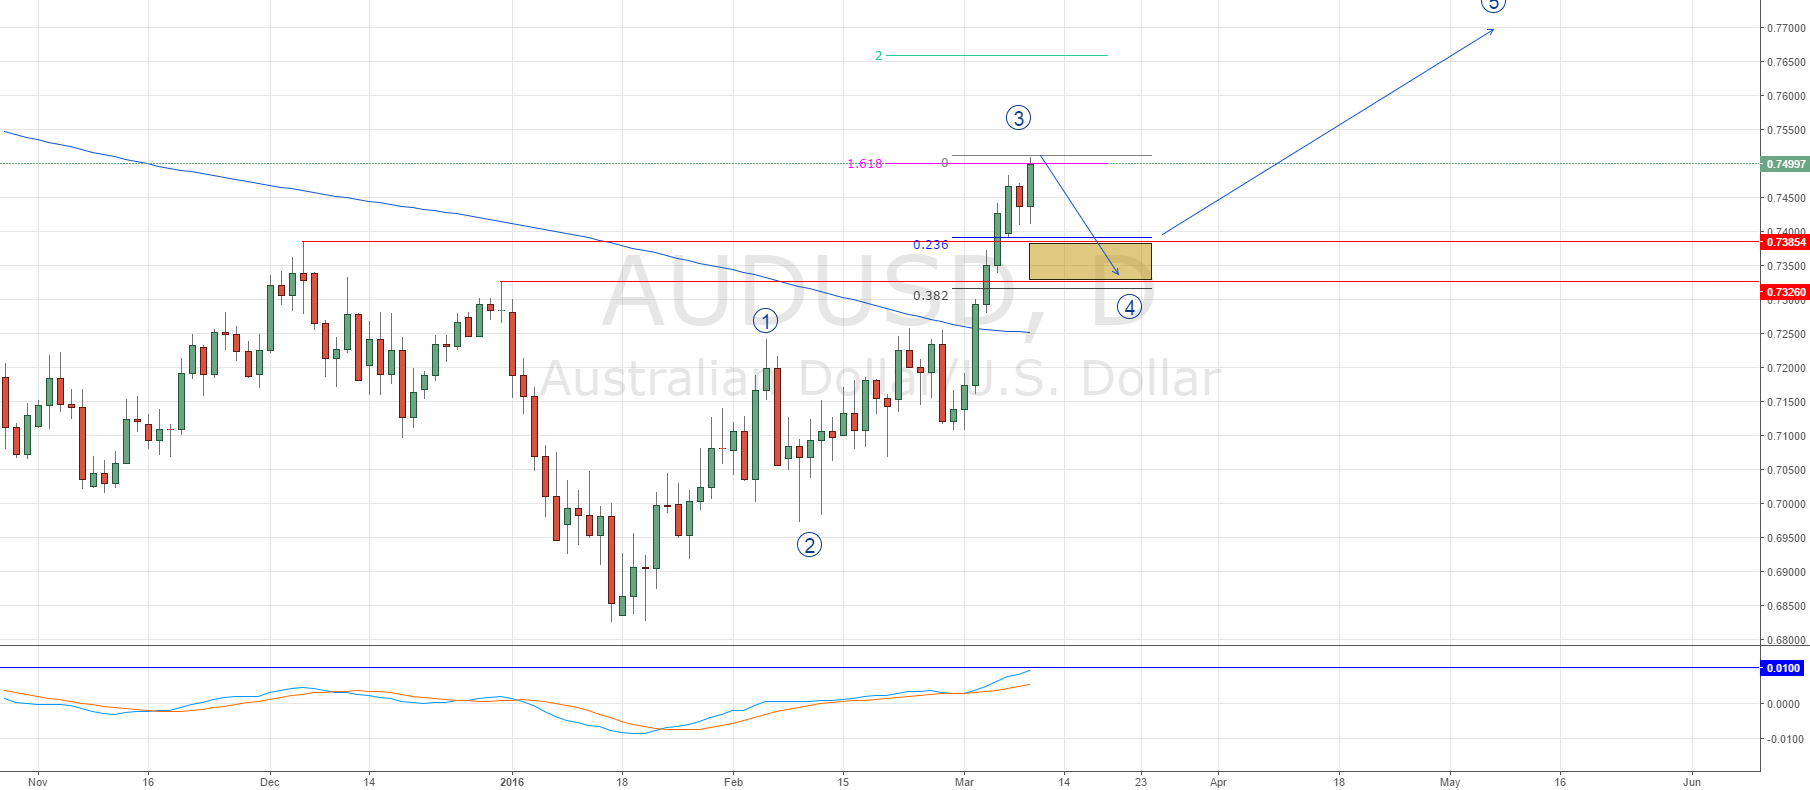 AUDUSD we have to see a correction down